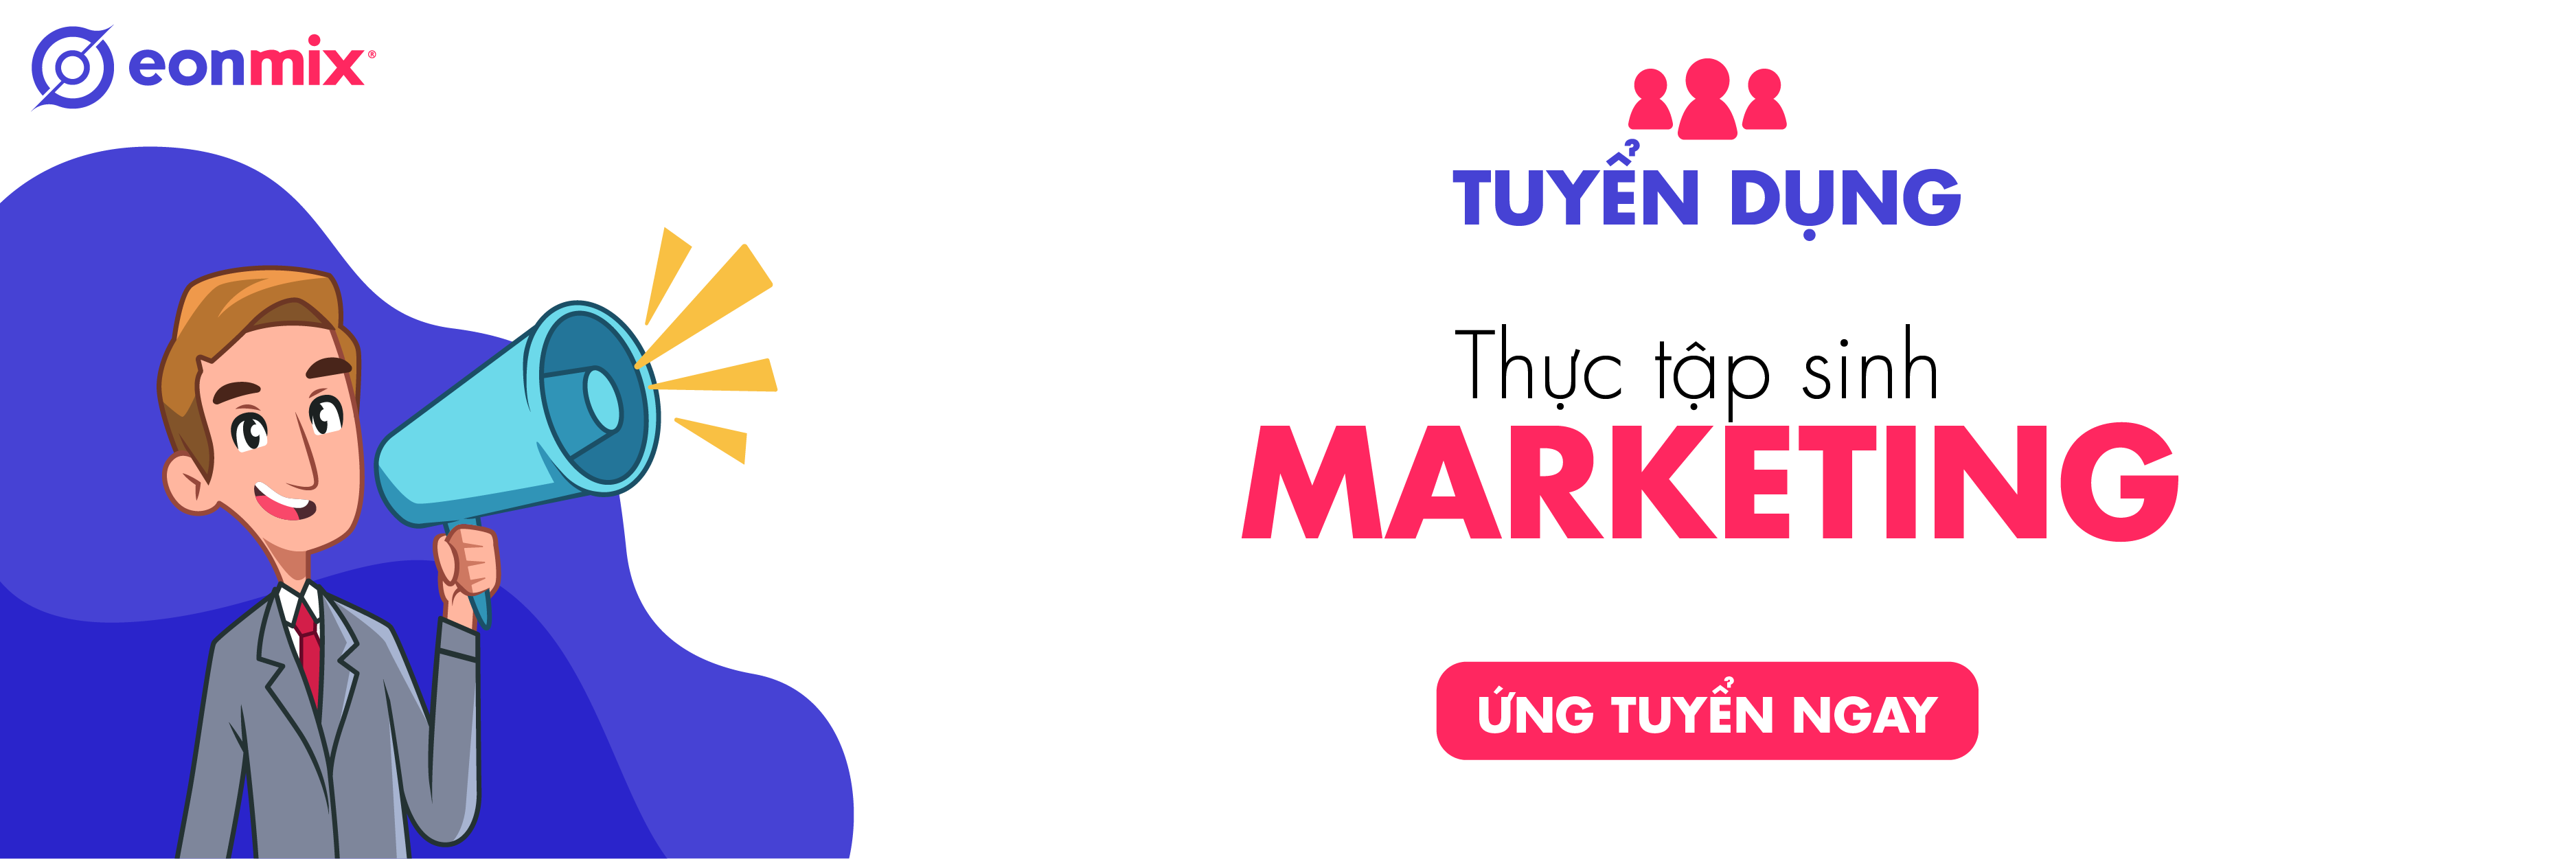 Banner tuyển dụng thực tập sinh Markeing cho Eonmix Creative Agency